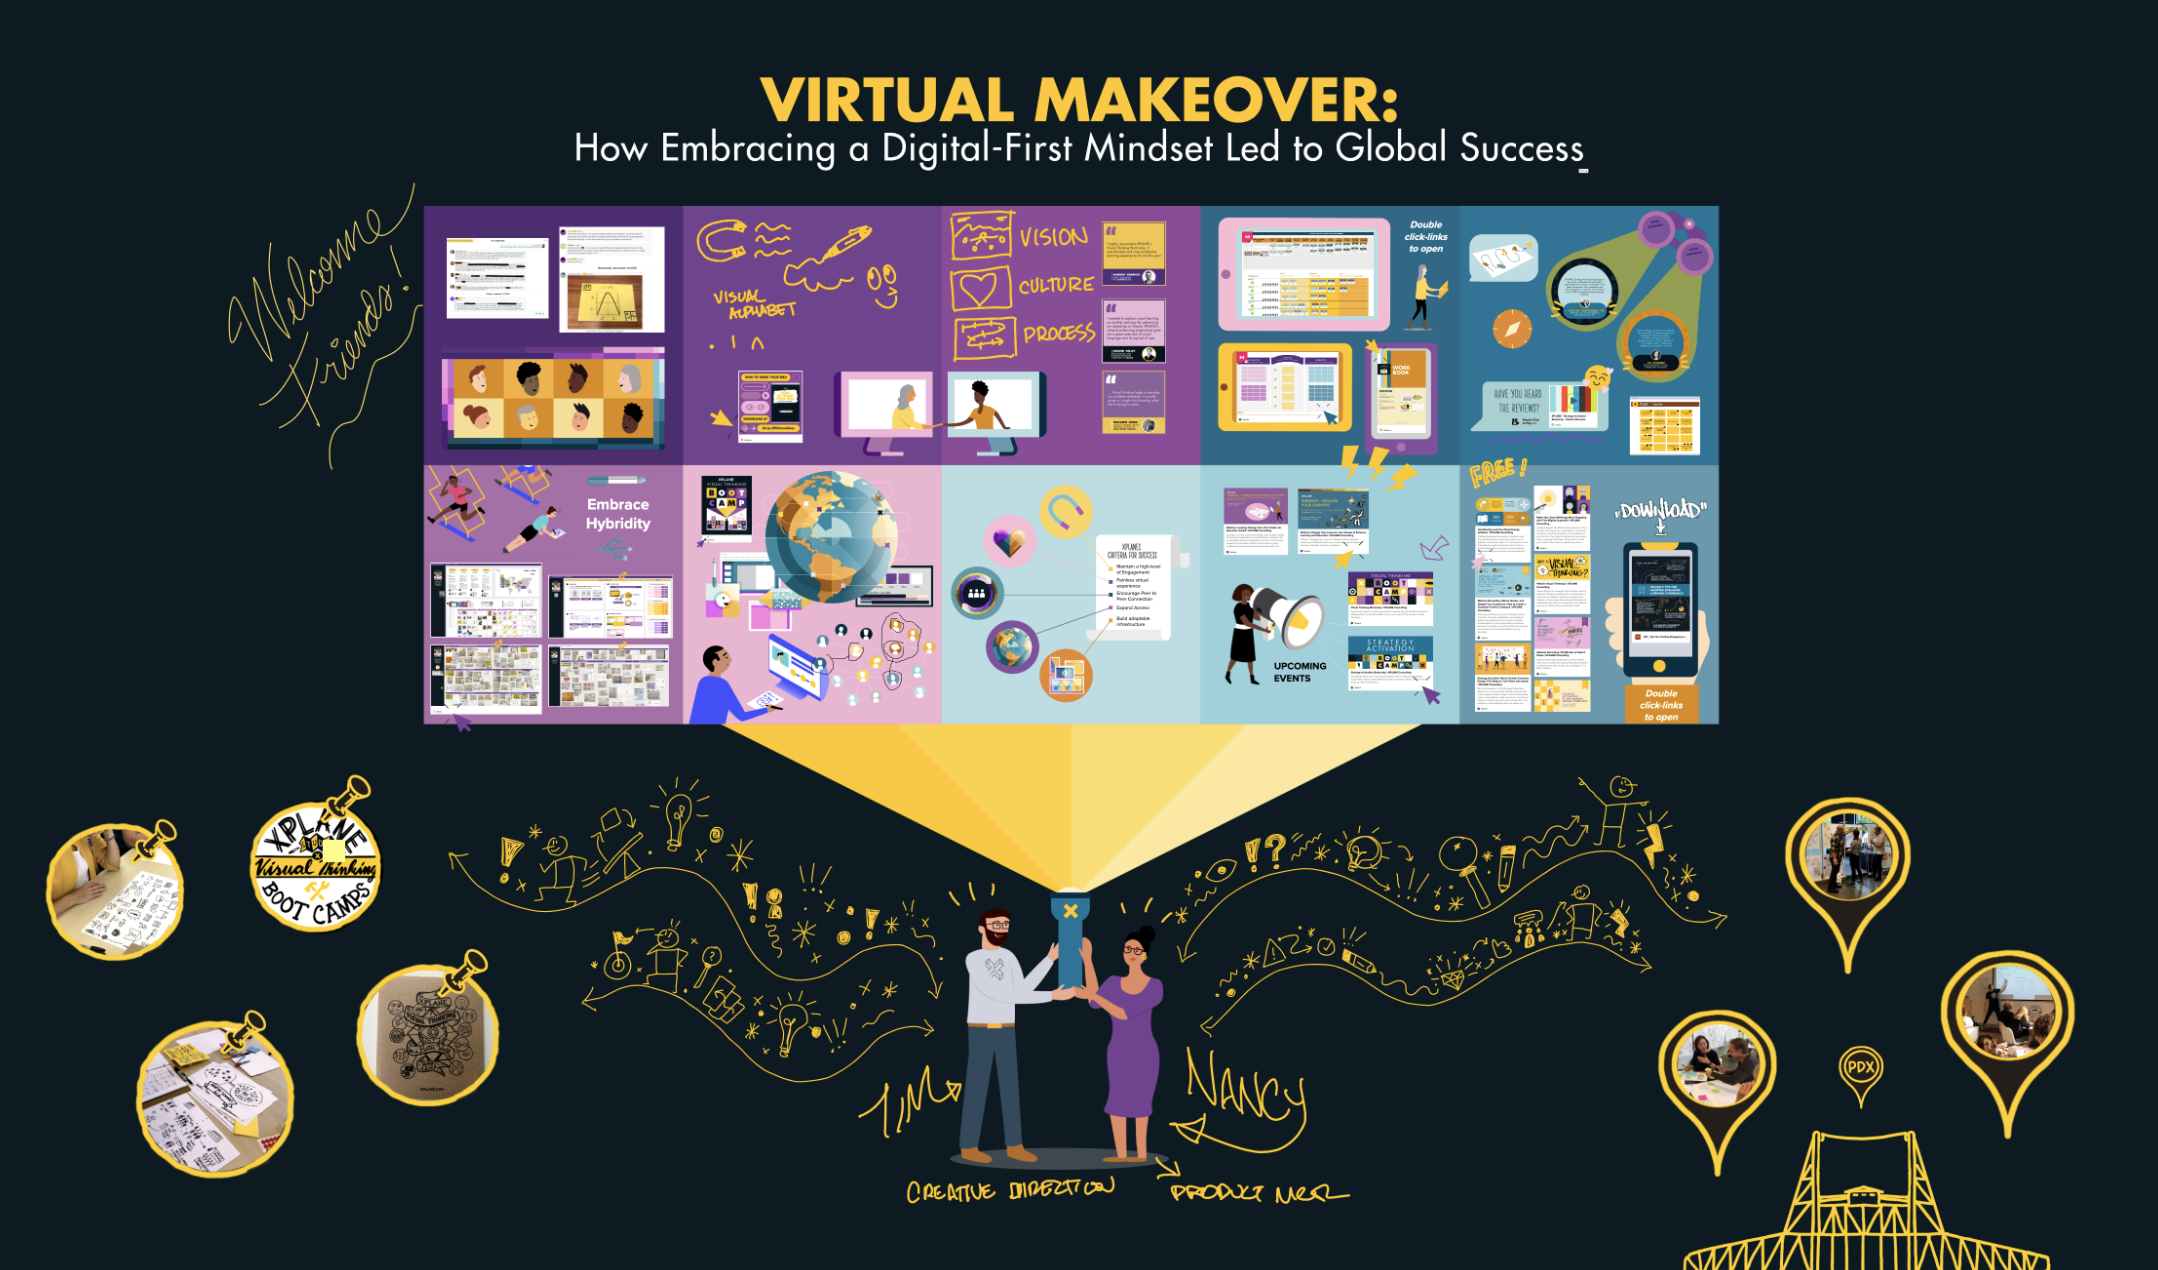 Snapshot of the Virtual Makeover Mural Board